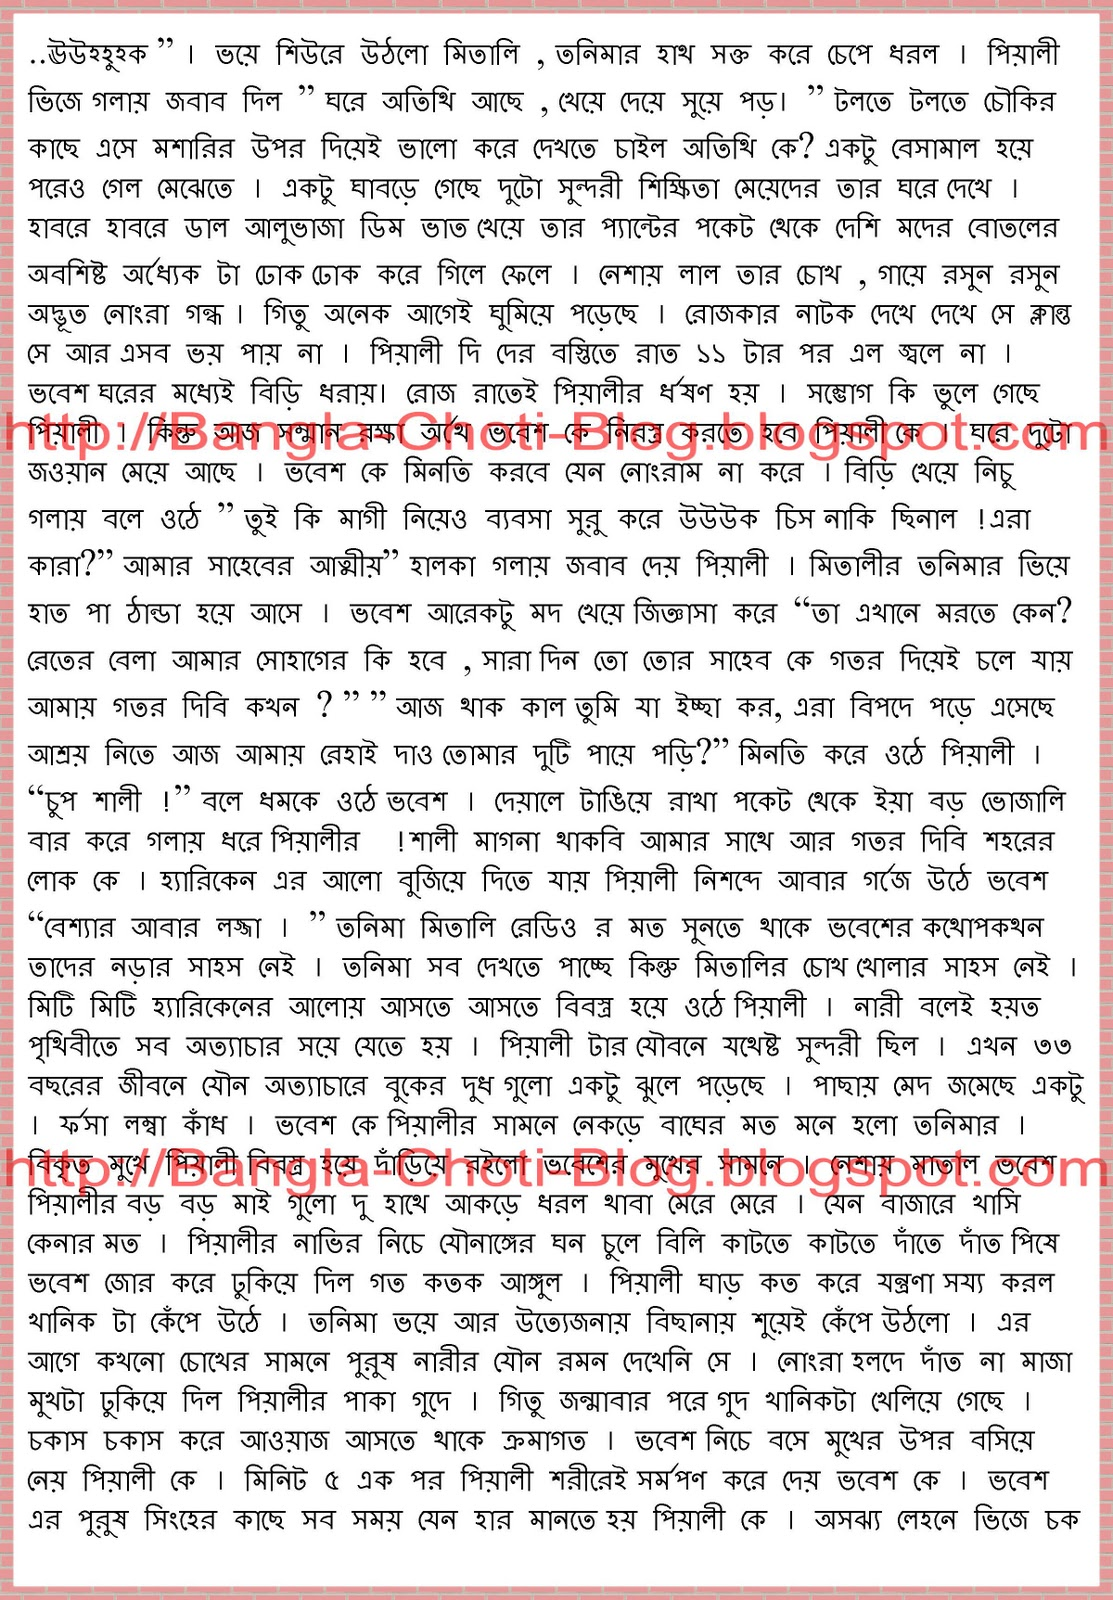 Bangla choti ebook free download jar for mobile by lingtenterslo.